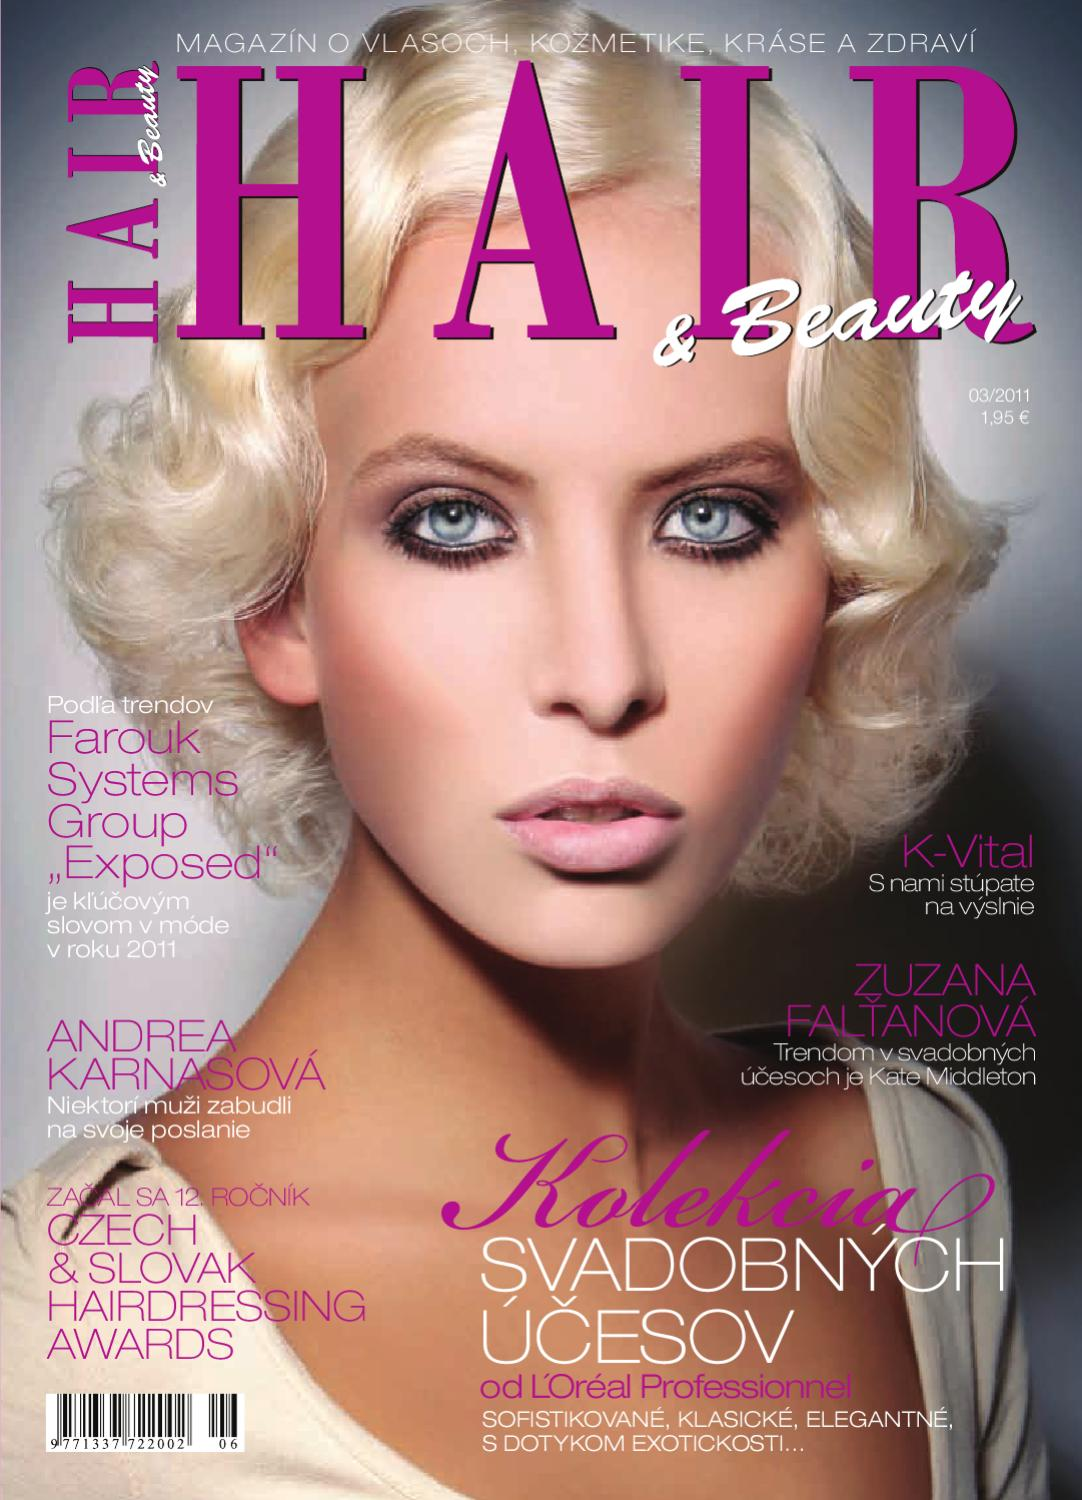 HAIR BEAUTY 3 2011 by Roman Zelenka - issuu 840cadc39cc